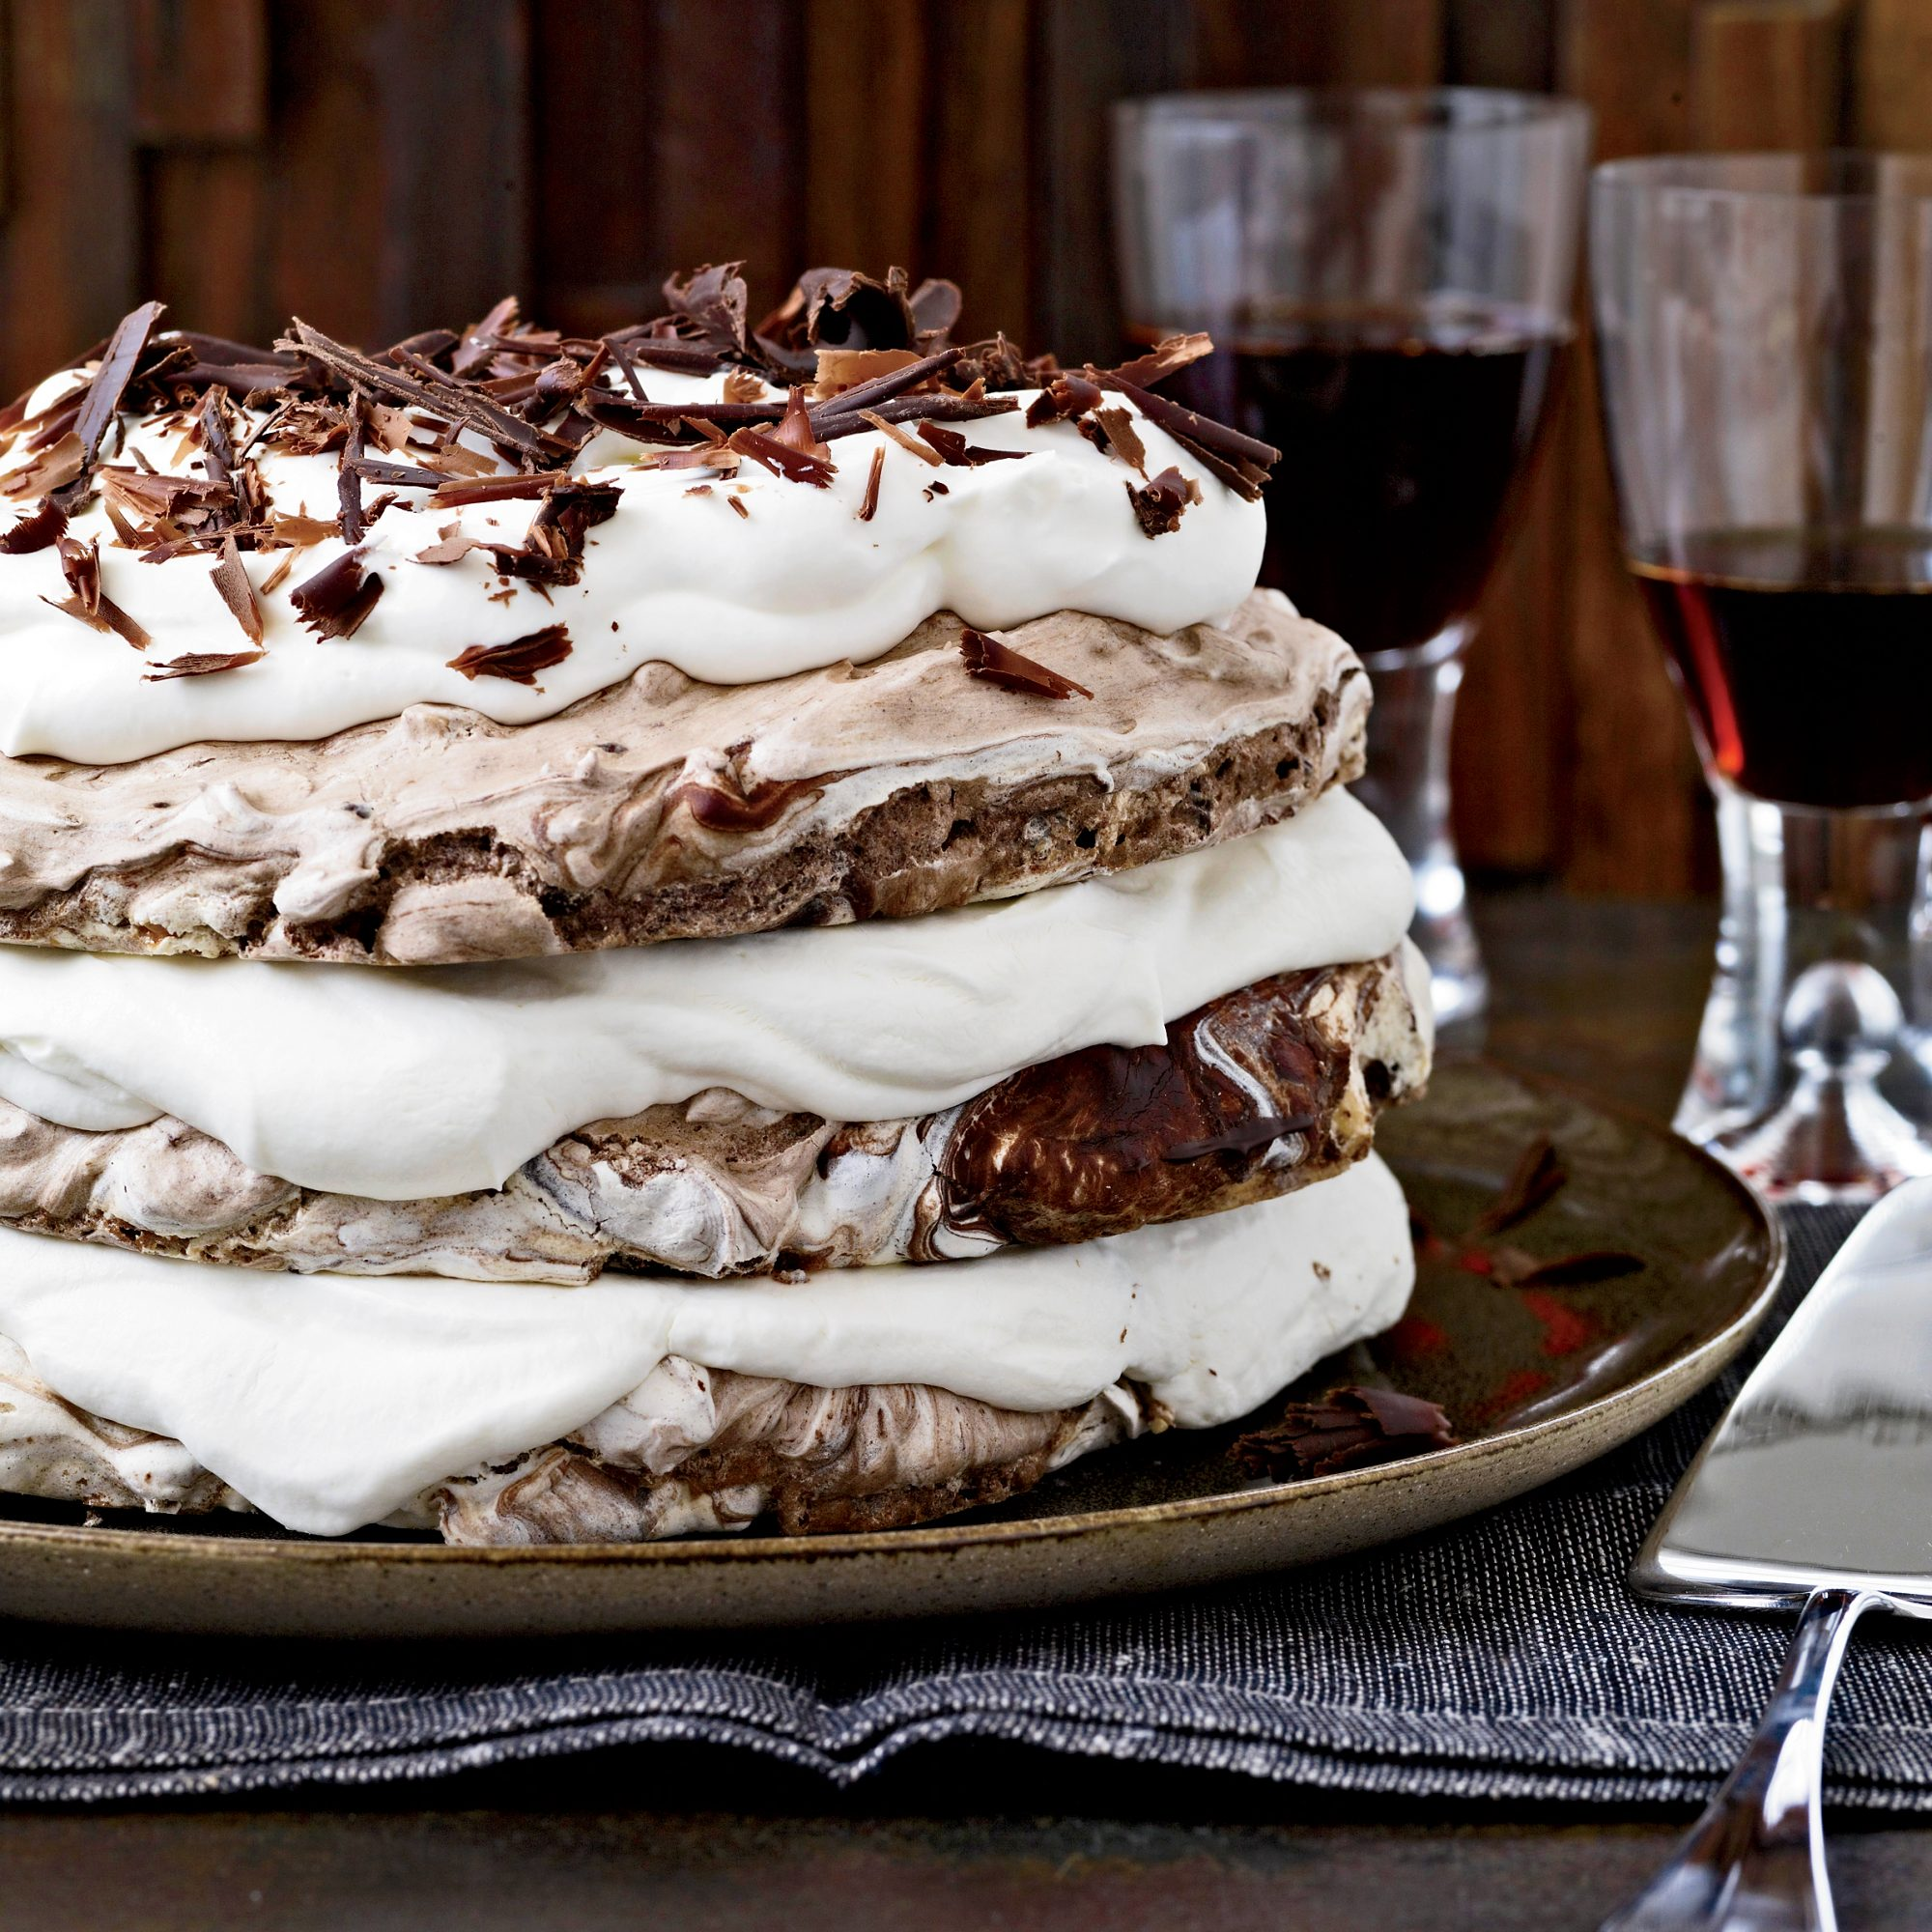 <h1>Desserts for Passover</h1>